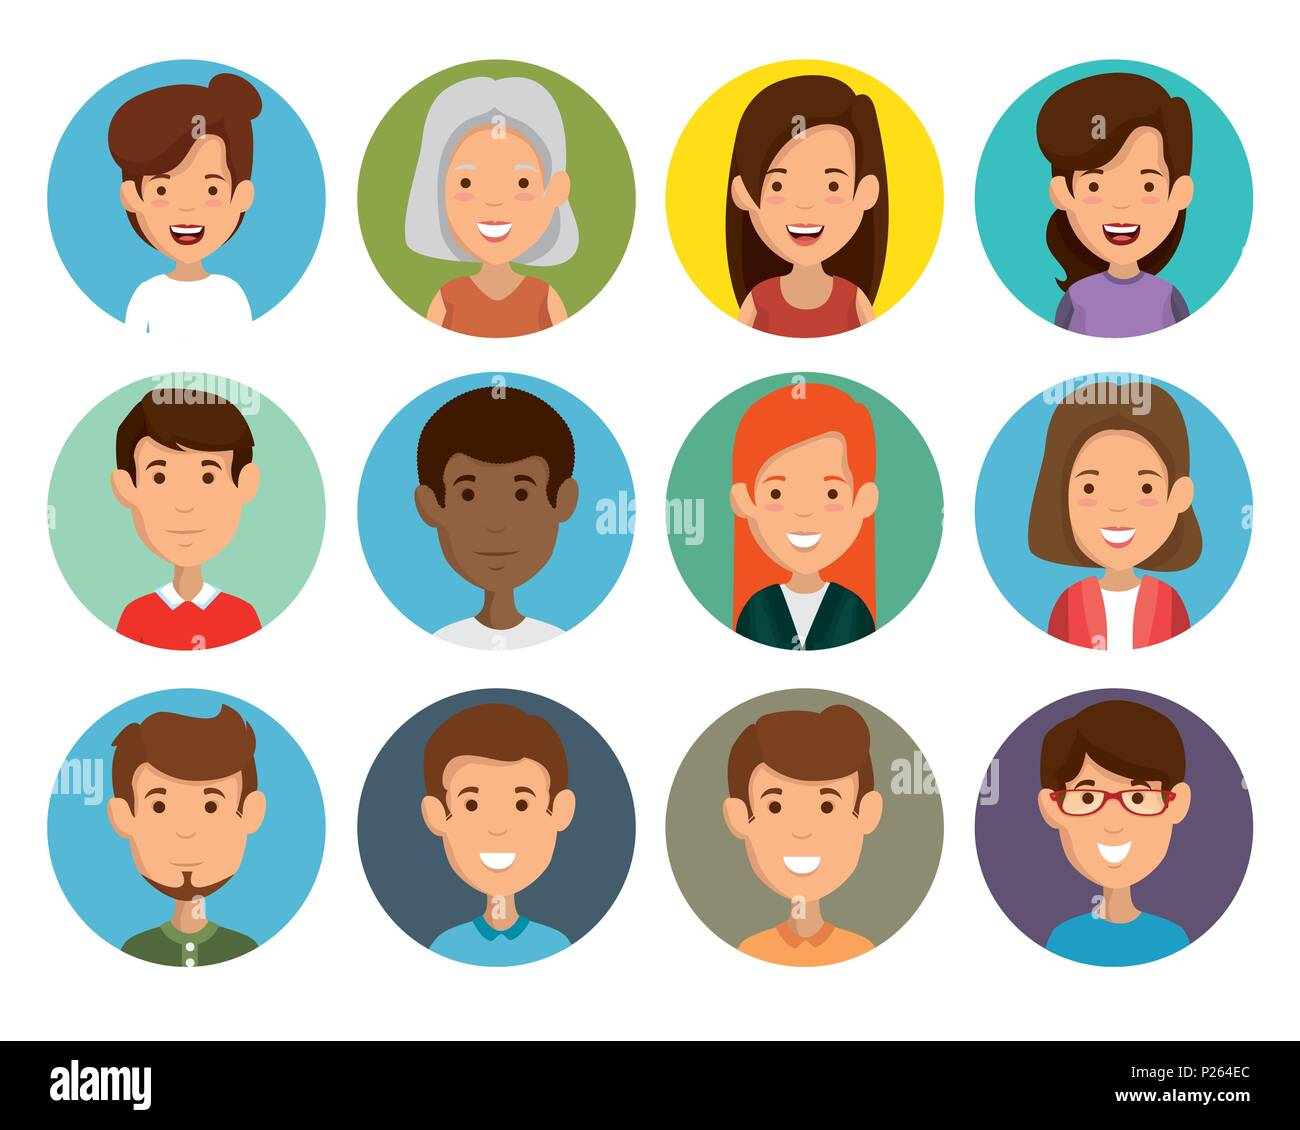 group of friends characters - Stock Image